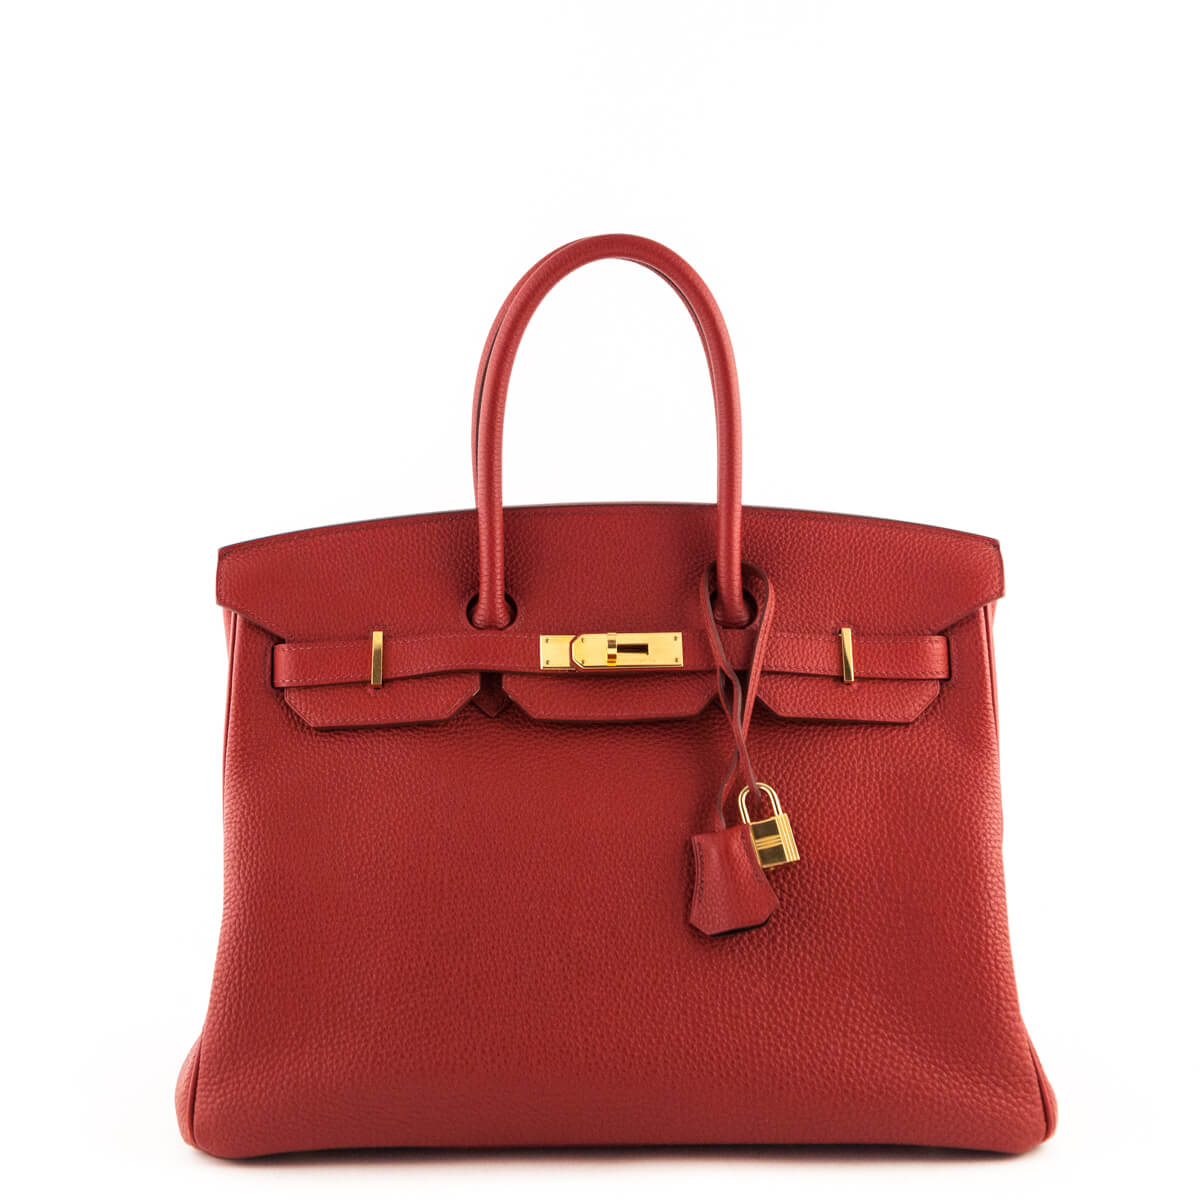 5ec0bc50edb ... czech hermes red togo birkin 35 love that bag preowned authentic  designer handbags 2f658 dd35e